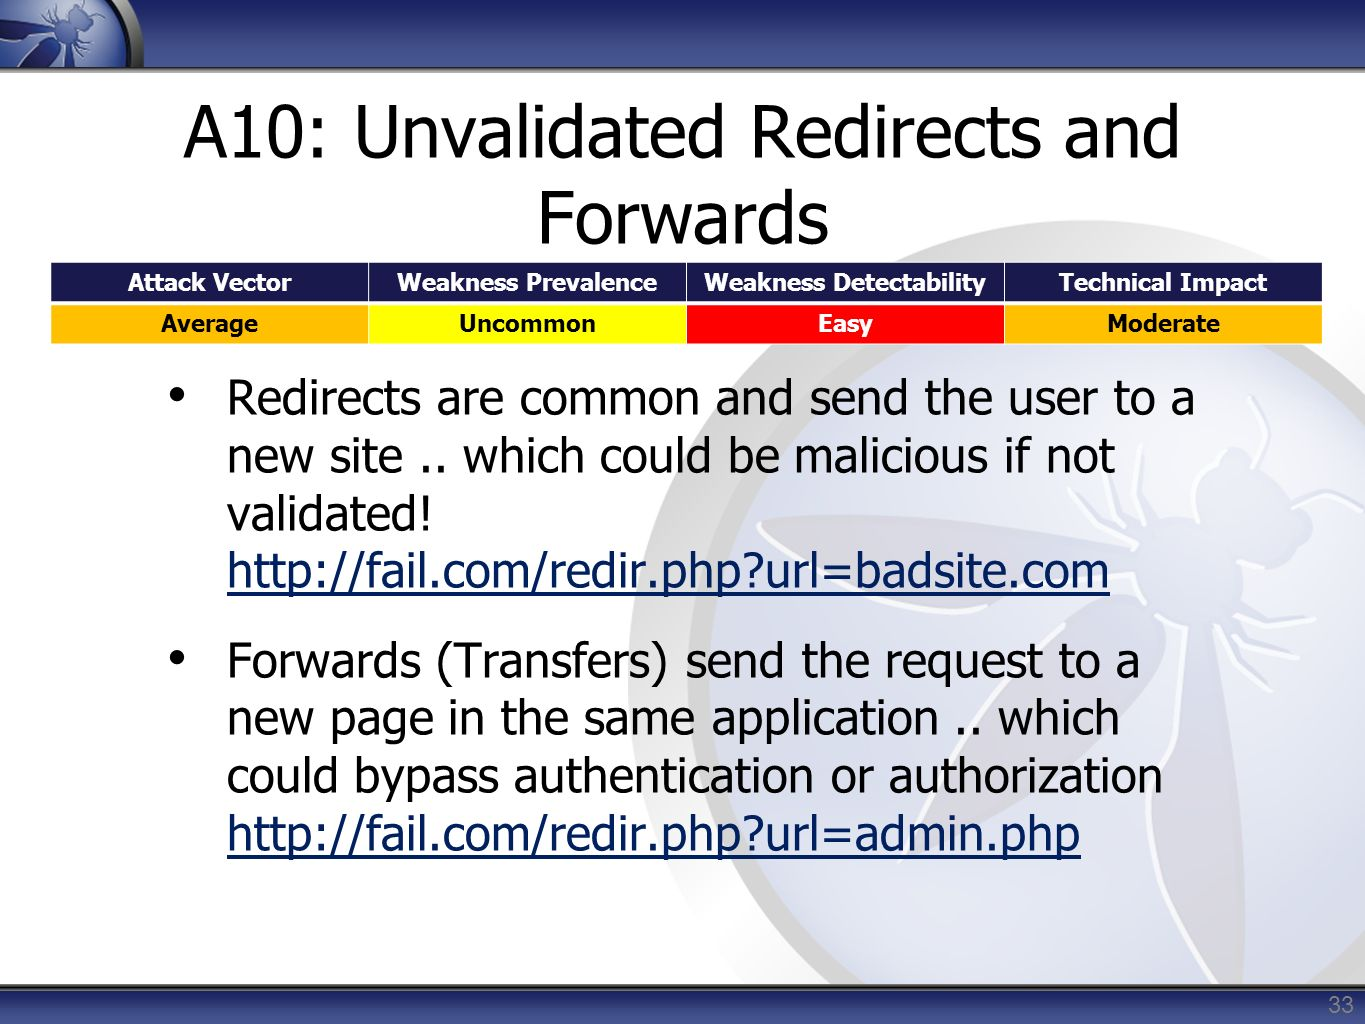 A10: Unvalidated Redirects and Forwards